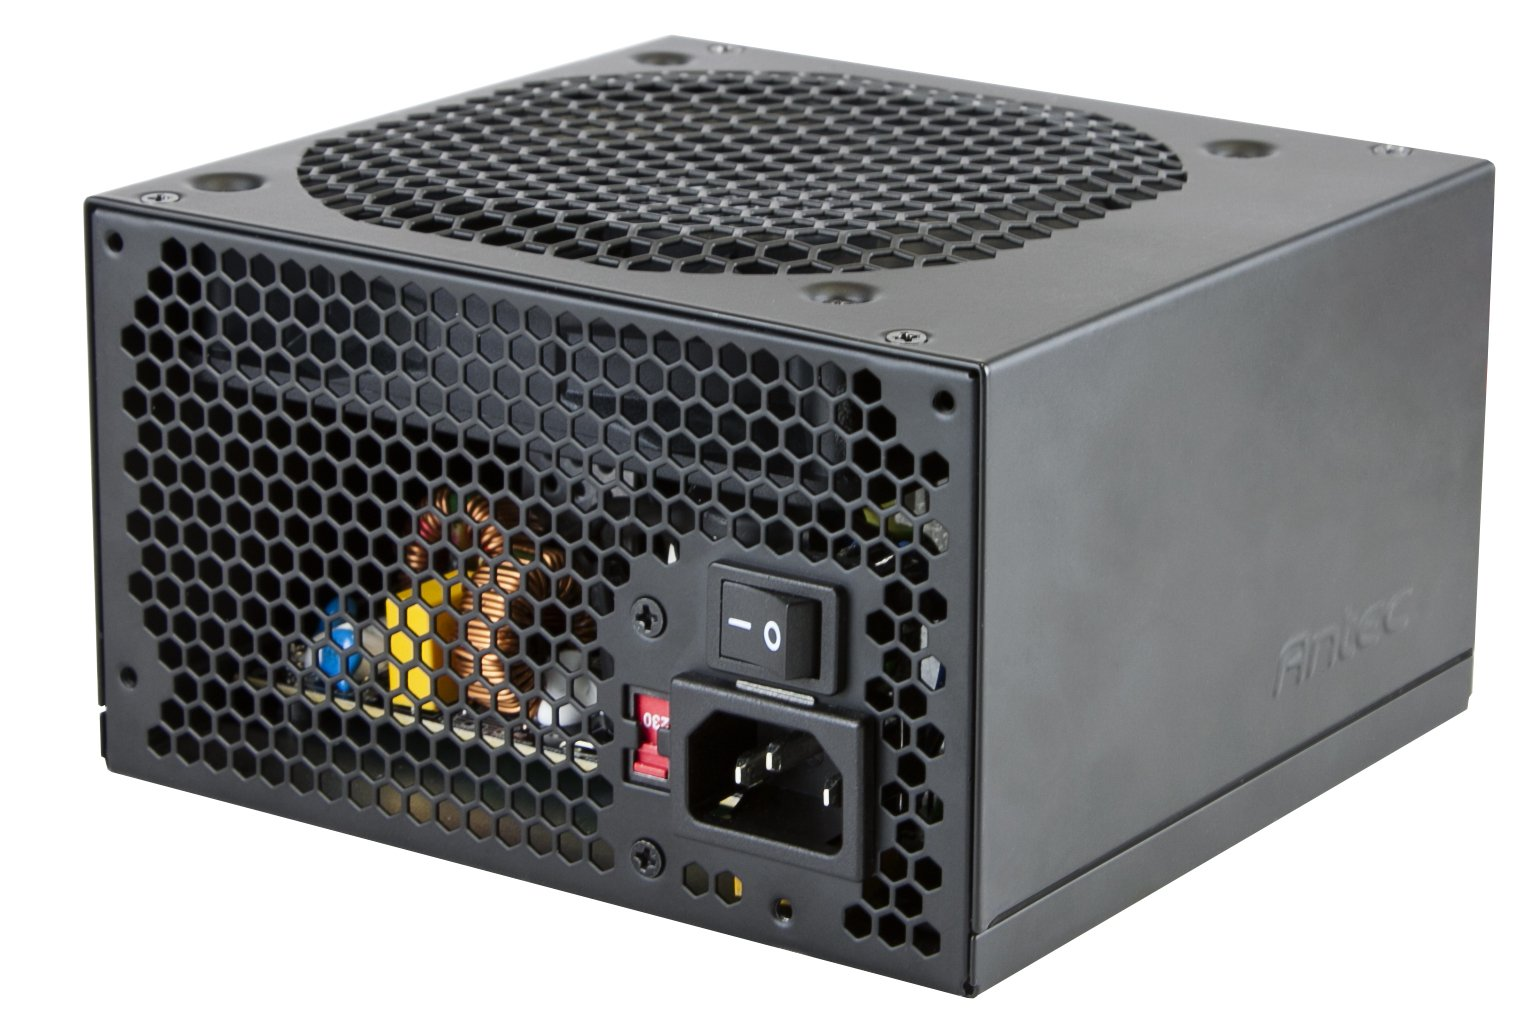 Antec VP-450 Power Supply